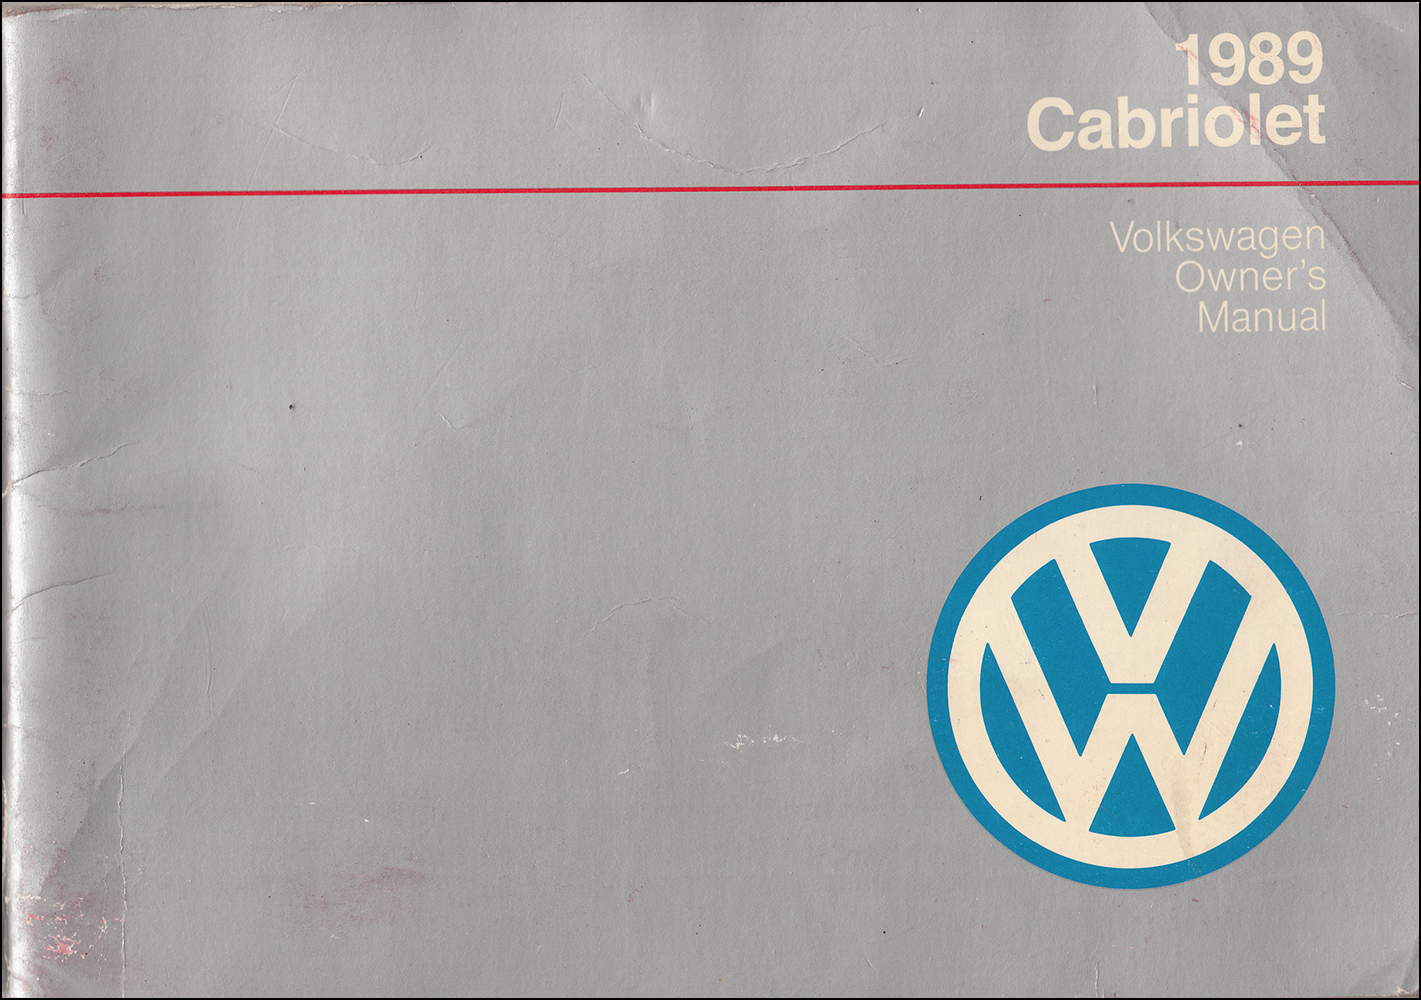 1989 Volkswagen Cabriolet Owner's Manual Original